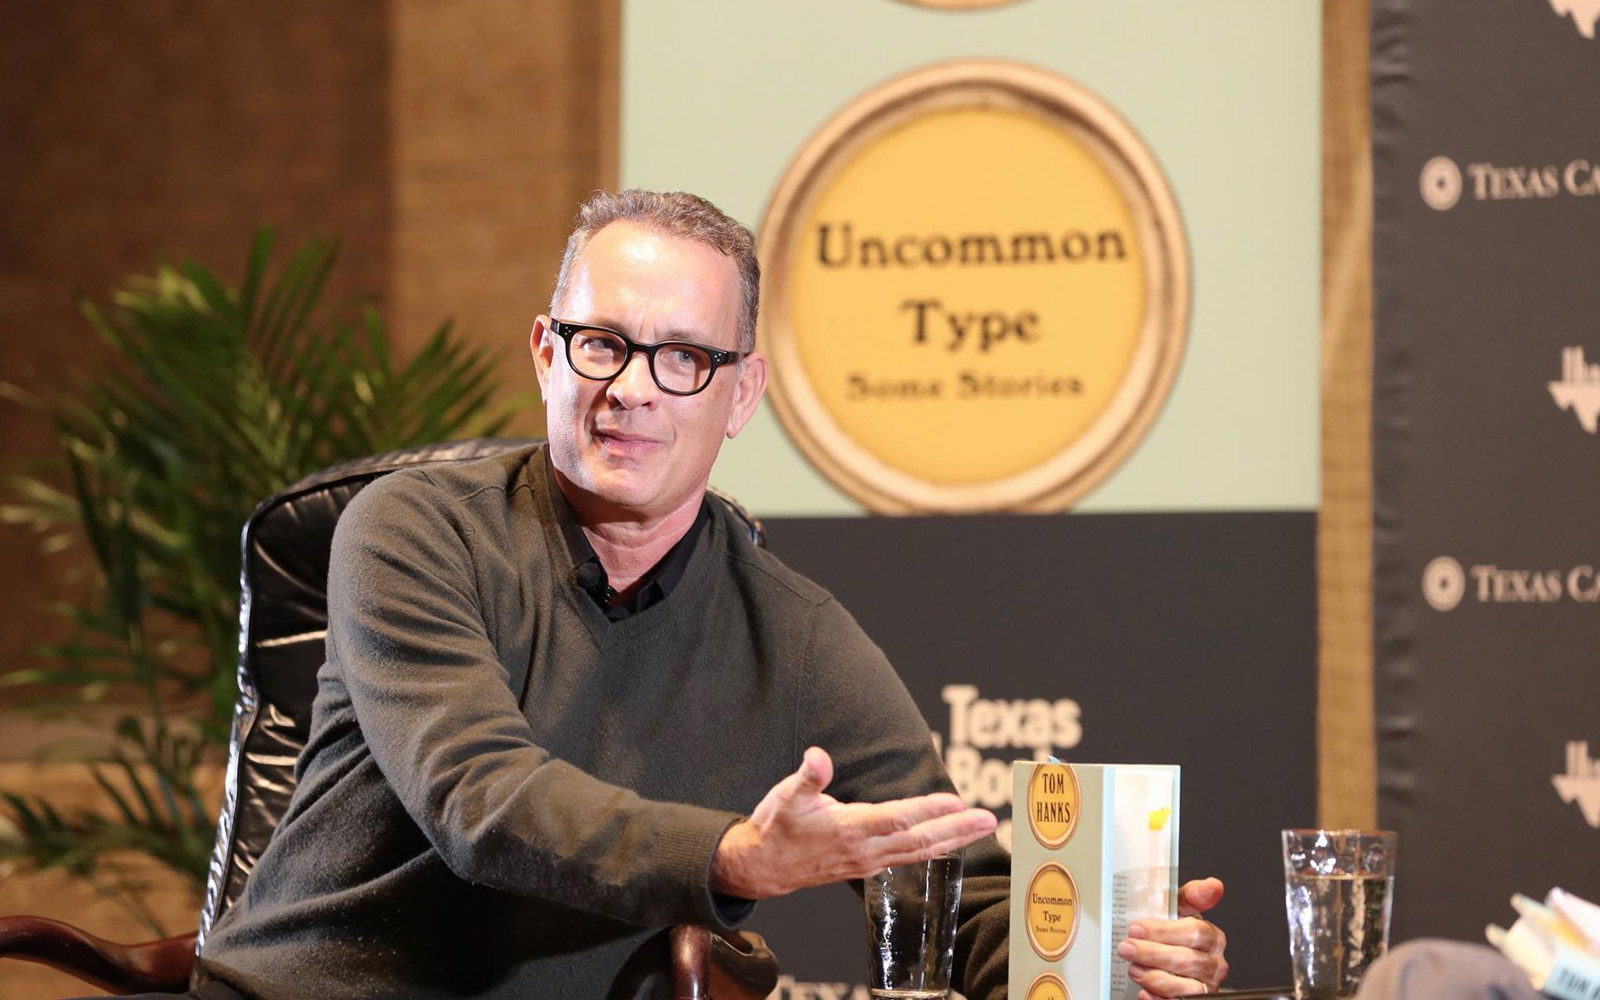 Tom Hanks Helped a Man Propose to His Girlfriend at the Texas Book Festival